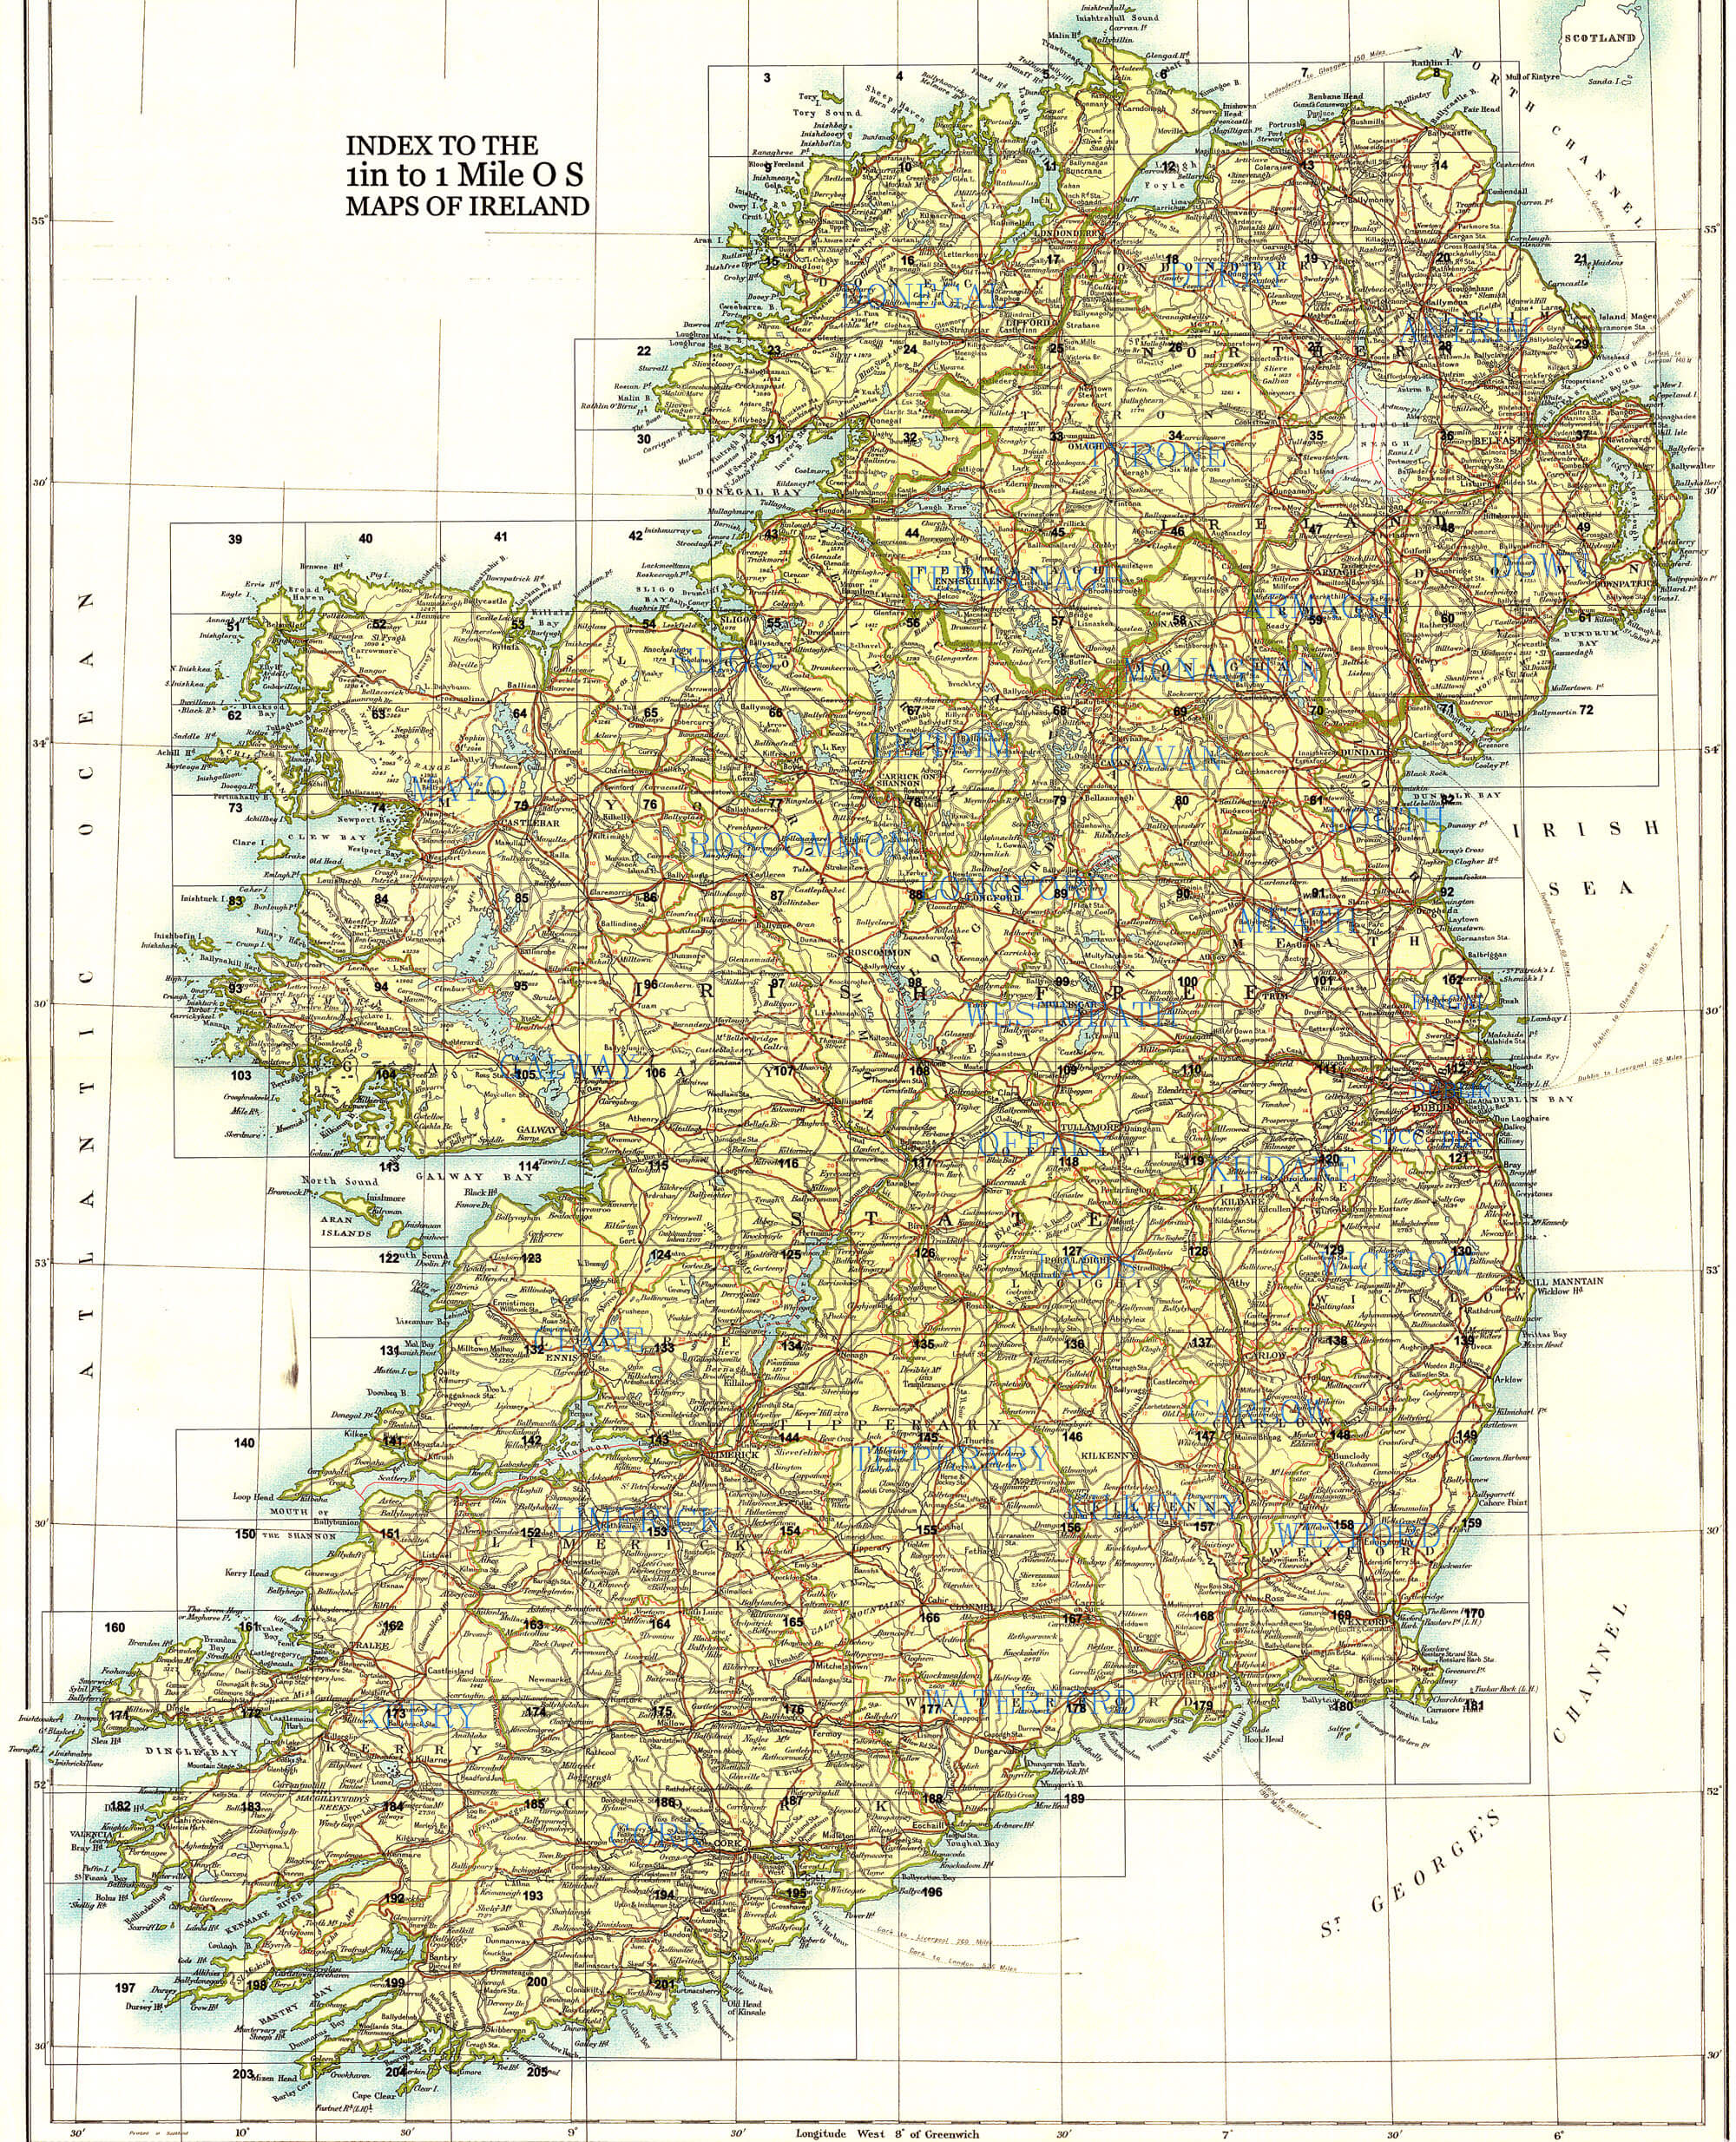 Os Map Of Ireland.Ireland 1in Topographic Col Abl 1907 Sheets 1 To 50 L Brown Collection